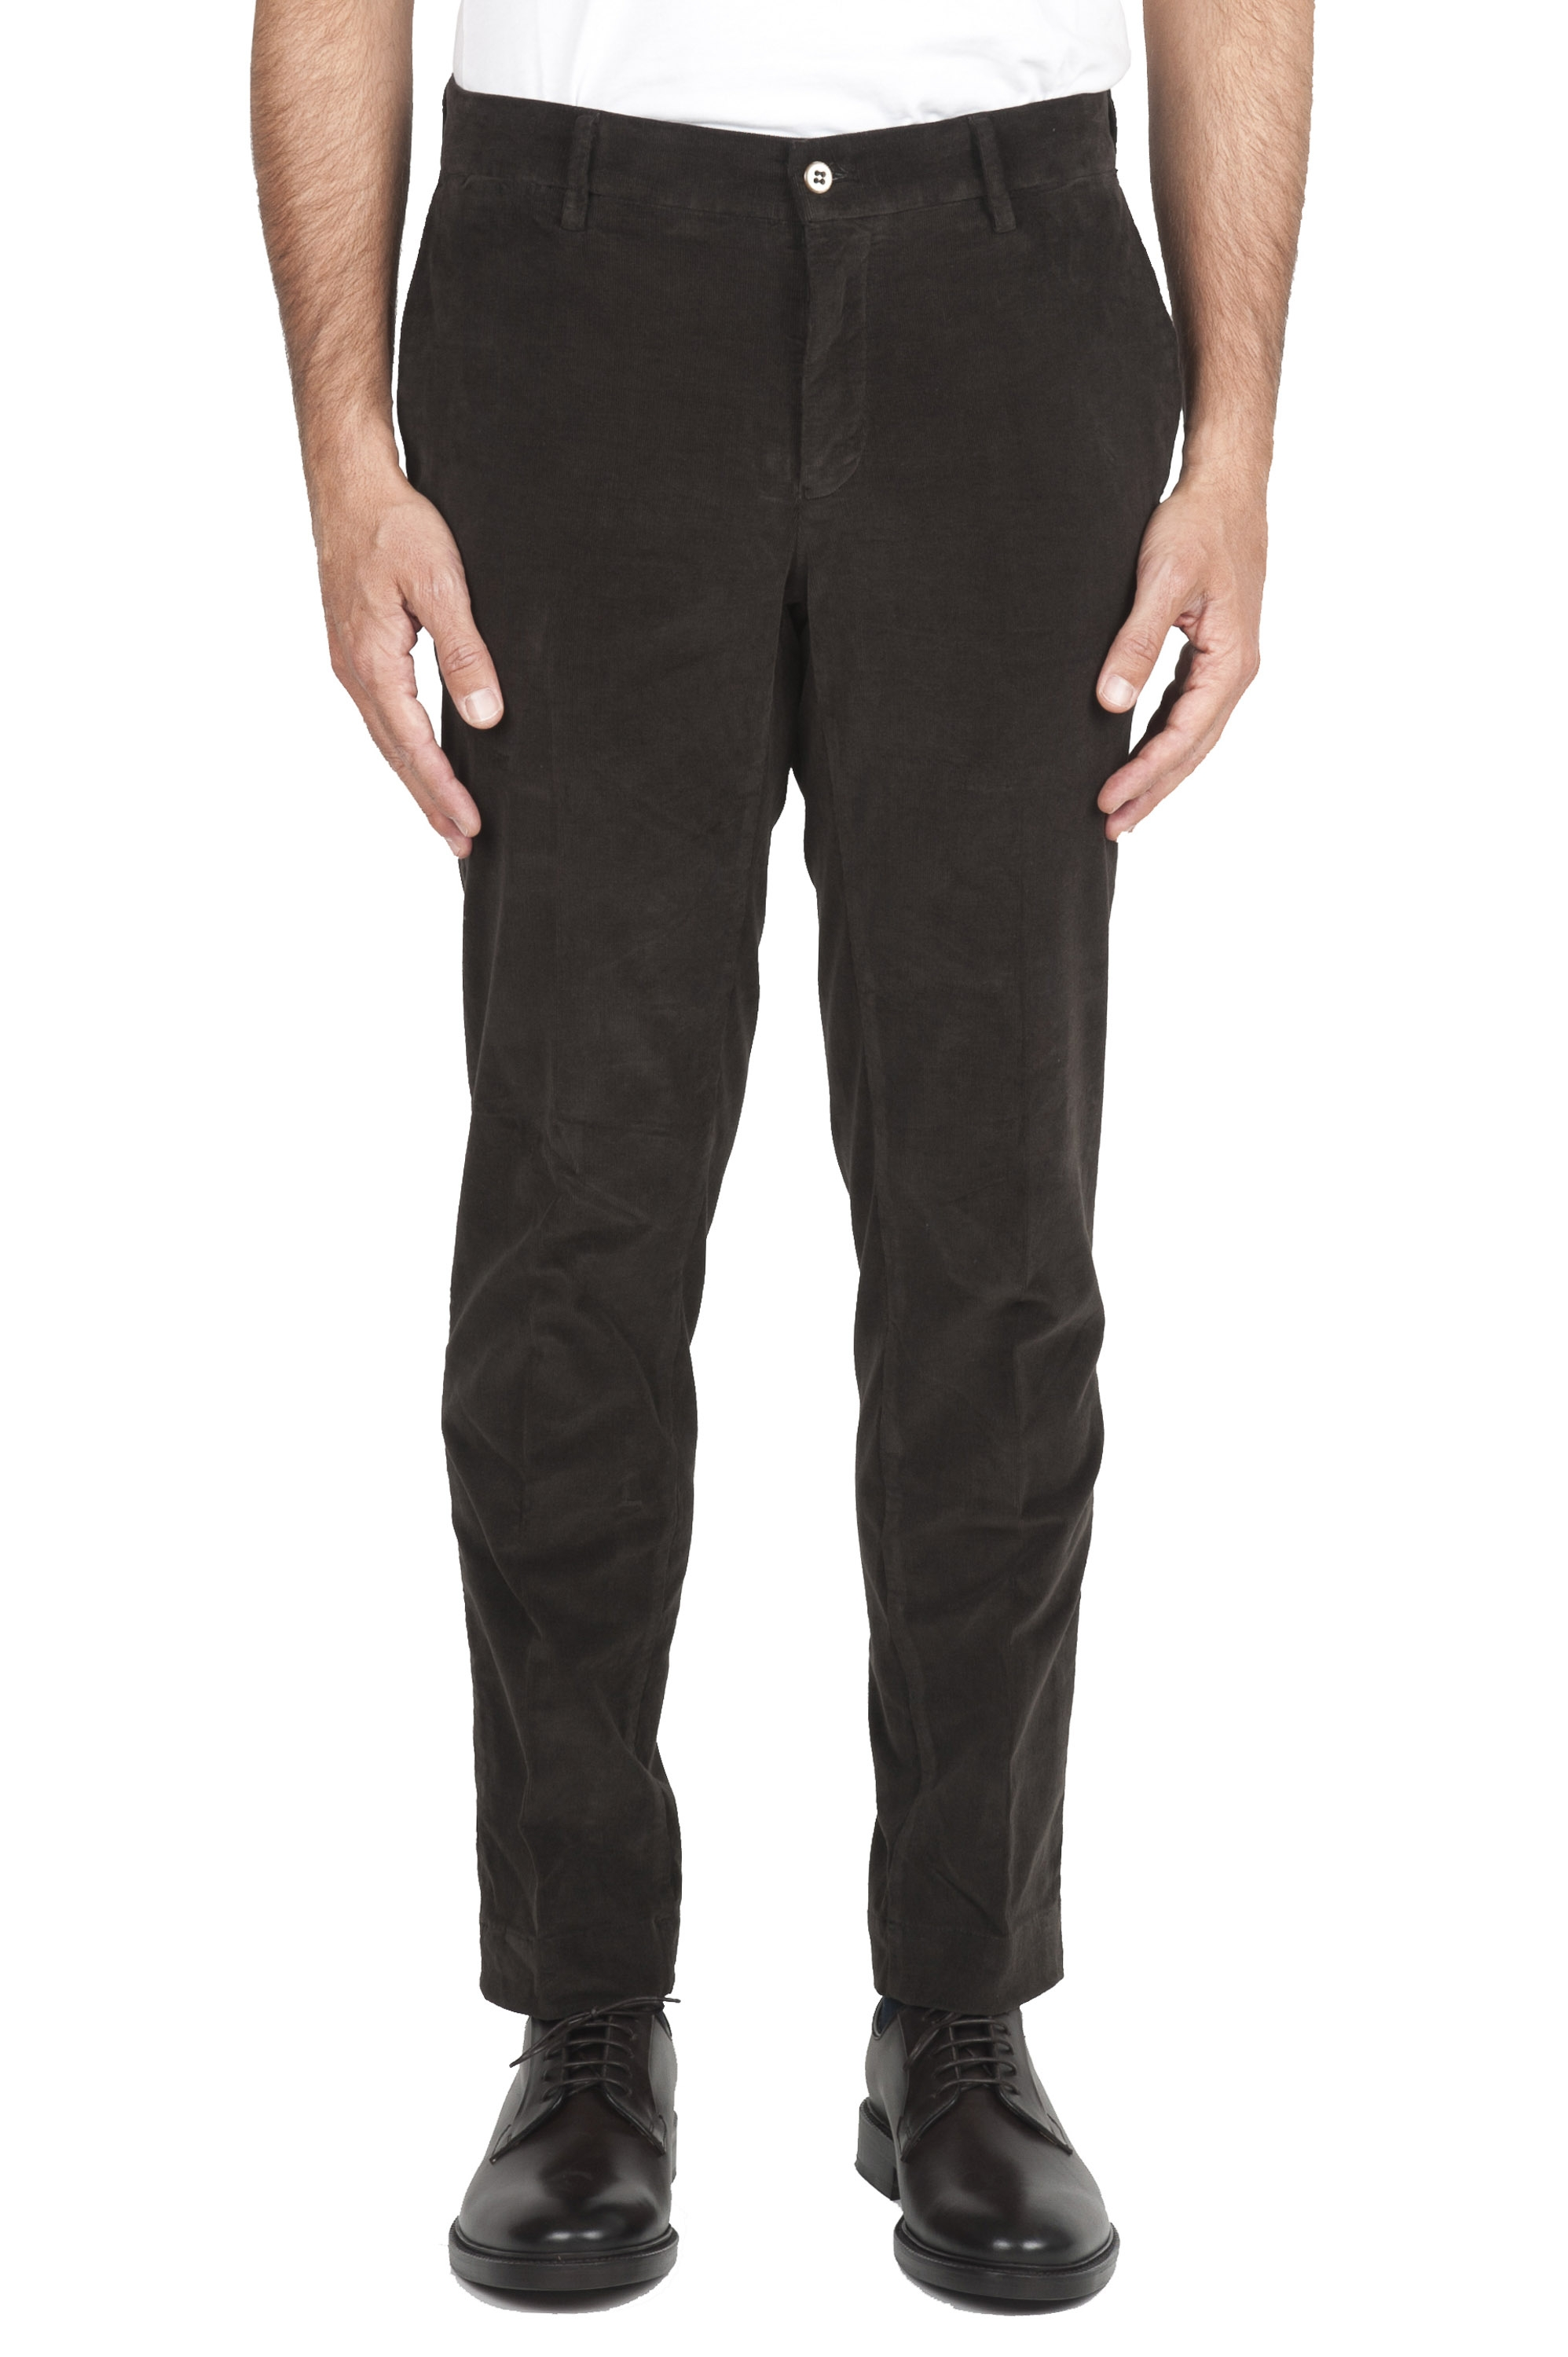 SBU 01547 Pantaloni chino classici in cotone stretch marrone 01